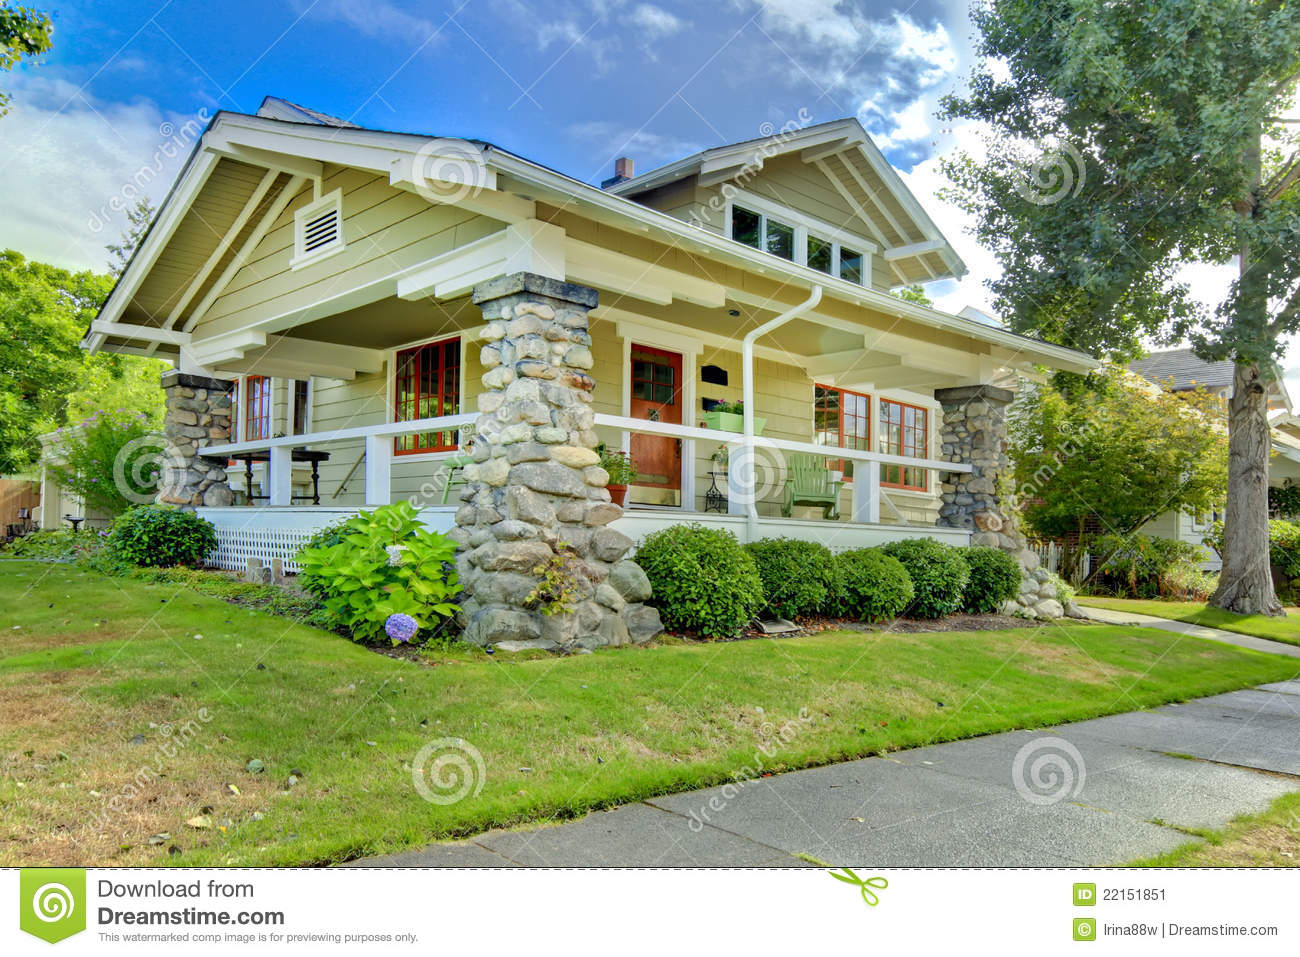 Covered front porch craftsman style home royalty free stock image - Covered Front Porch Old Craftsman Style Home Stock Image